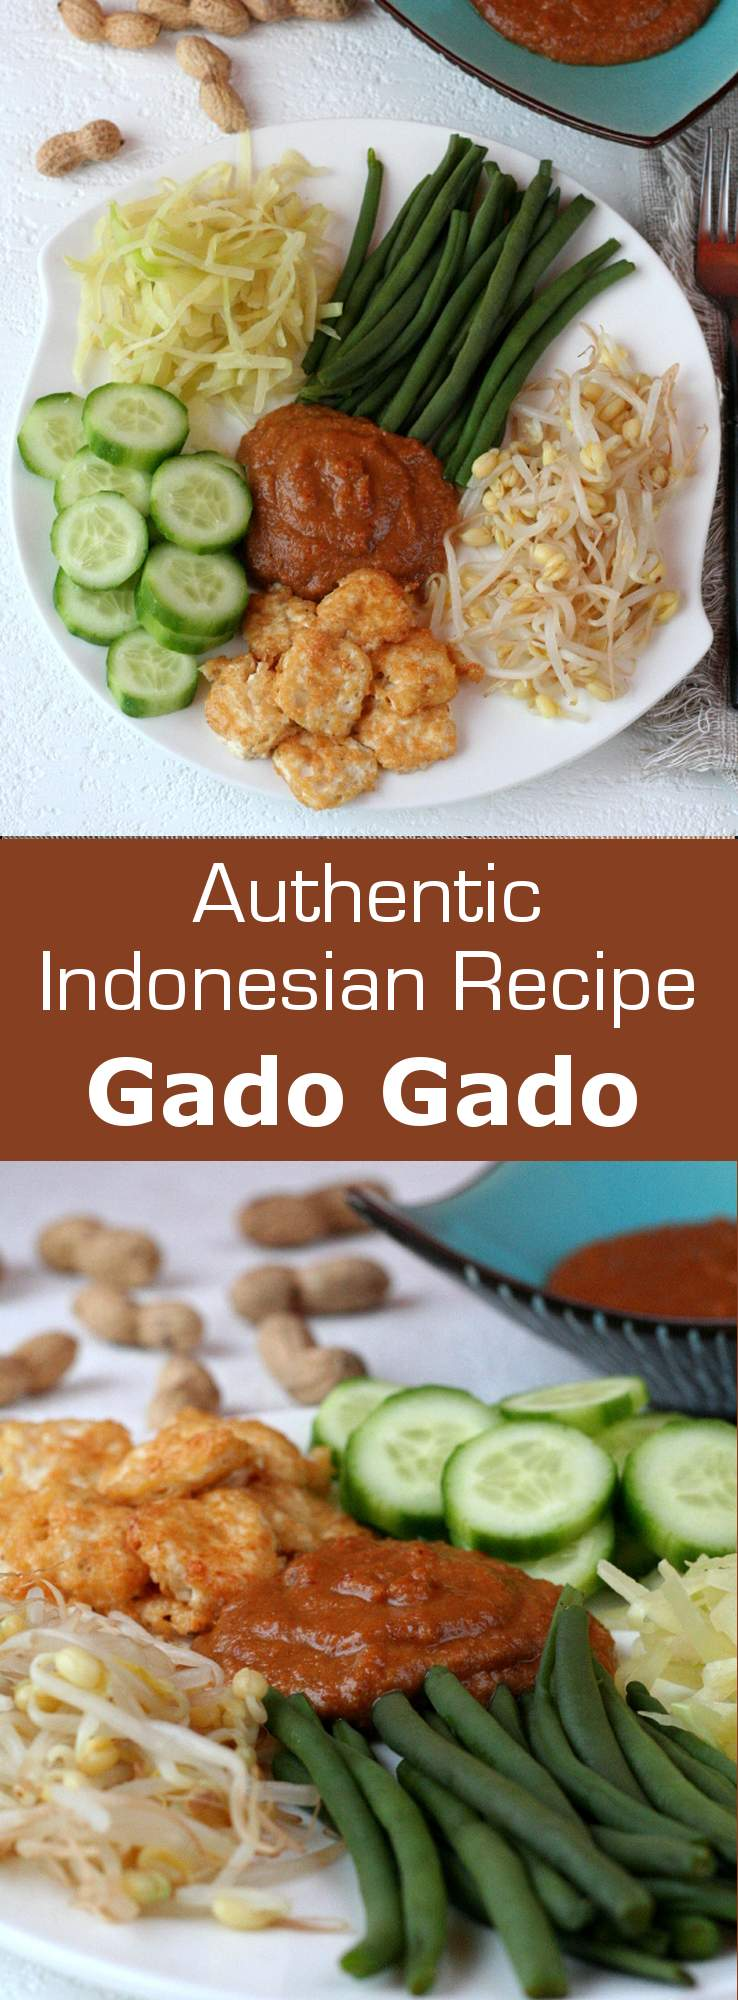 As an authentic and traditional Indonesian vegetarian recipe, gado gado salad is famous for its spicy peanut sauce and fried tofu. #salad #vegan #vegetarian #indonesia #196flavors